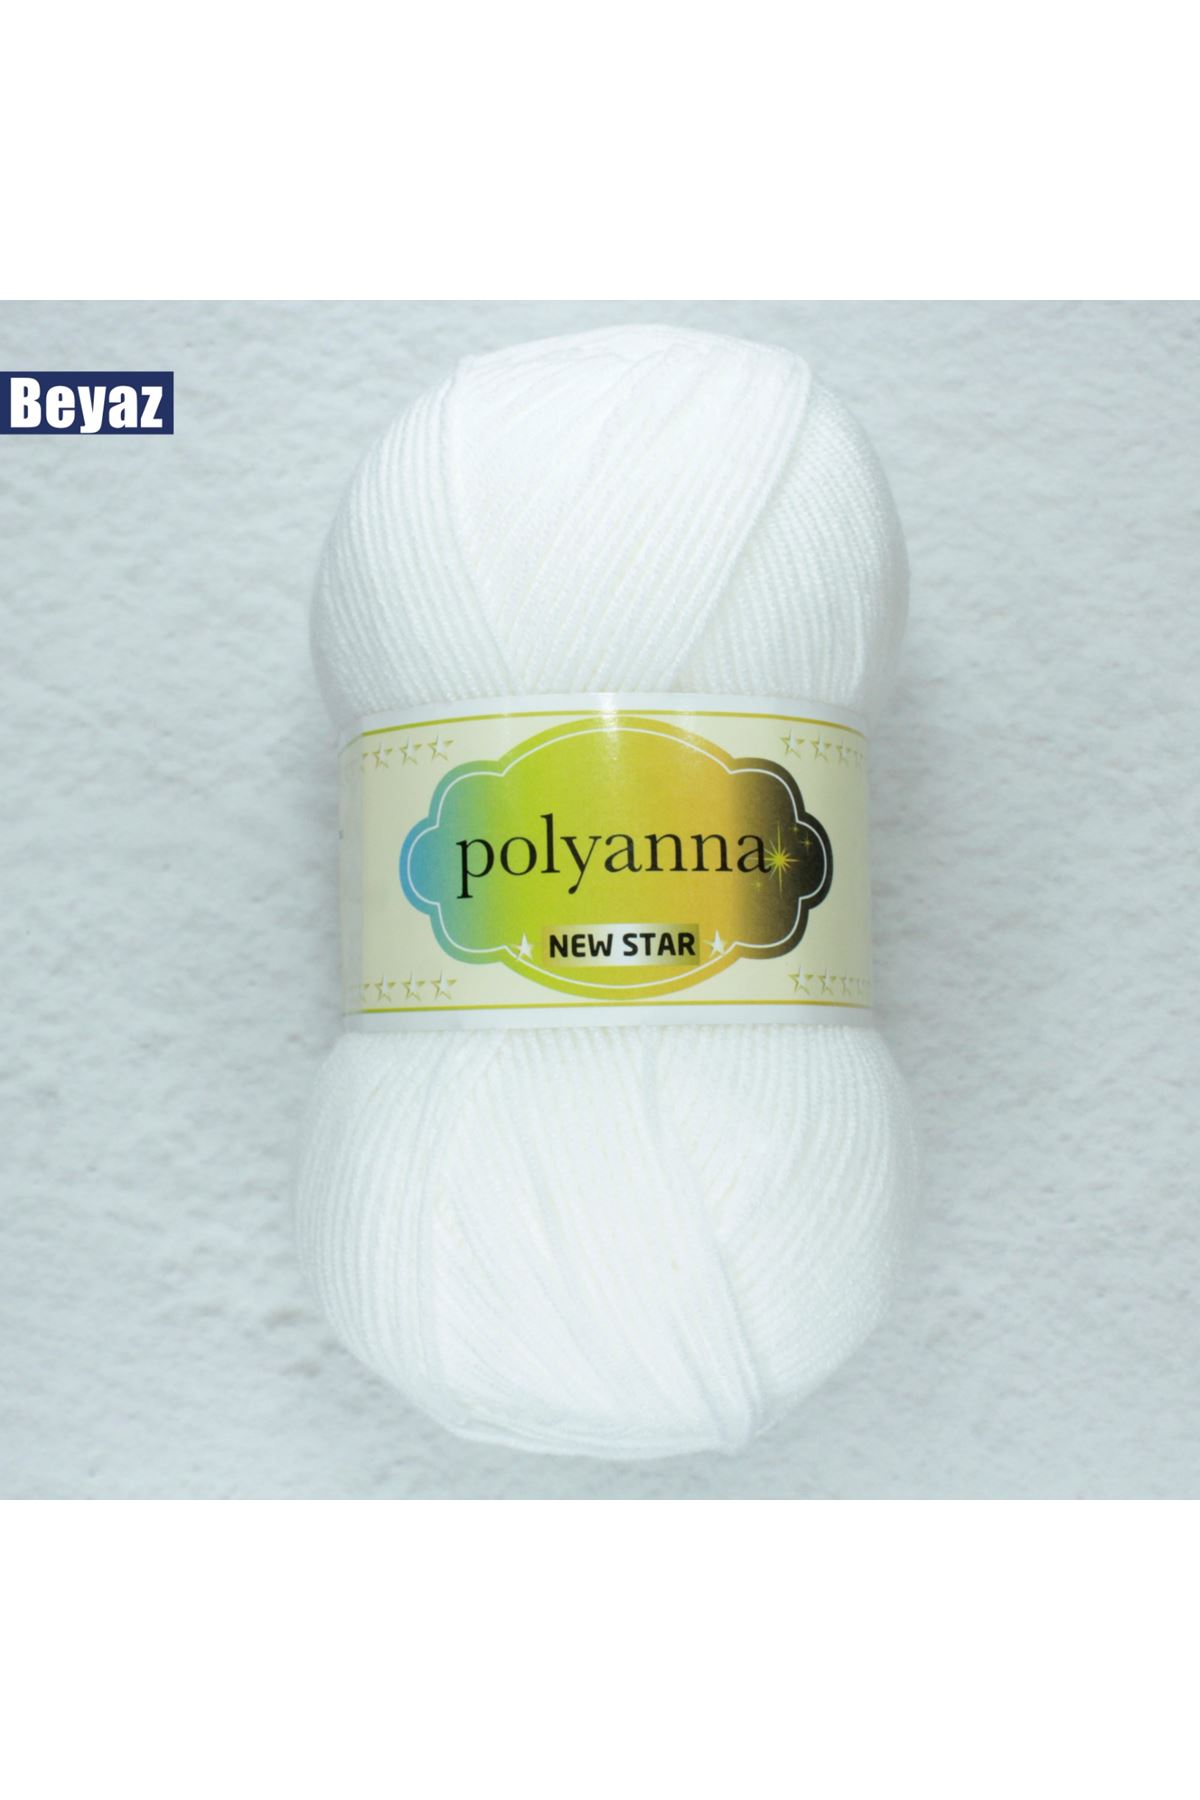 Polyanna New Star Beyaz